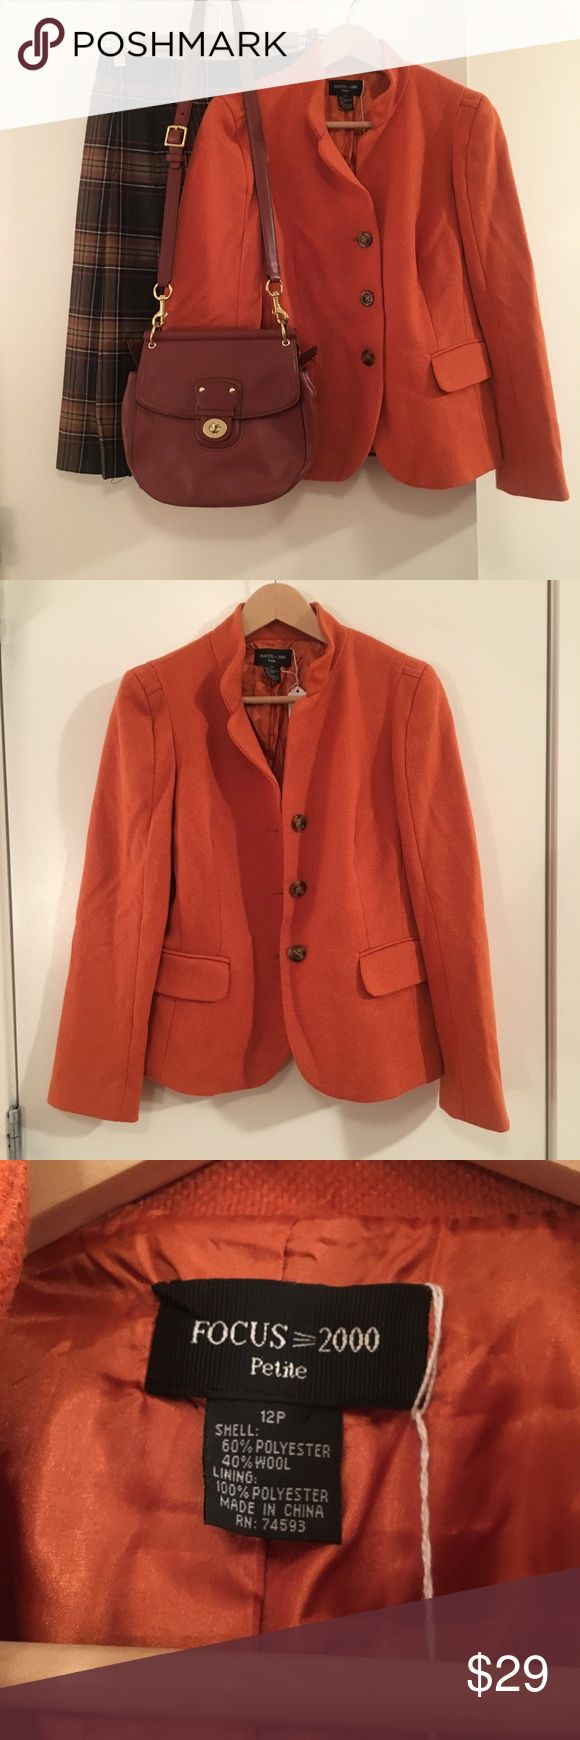 ✨Focus 2000✨ Zesty Orange Wool Blazer 12P Every wardrobe needs a pop of color so why not add this Zesty & Warm Orange fitted Blazer. ✨💞✨💞  All of the other items in this outfit are sold separately in my closet. Don't forget to bundle and save 💃🏾💃🏾💃🏾💃🏾 Jackets & Coats Blazers